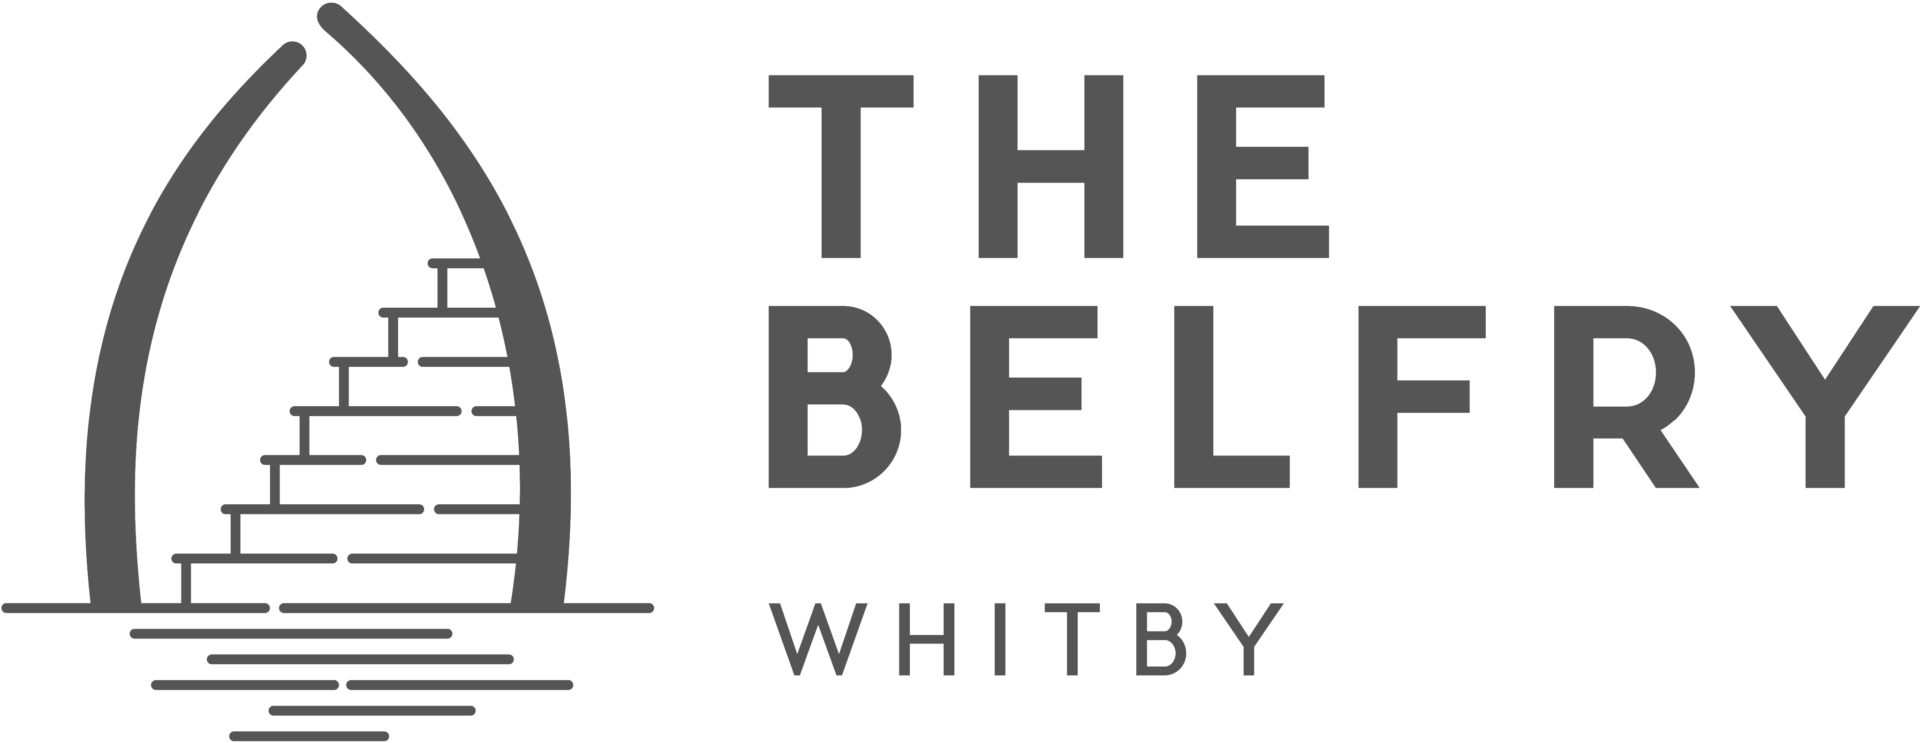 The Belfry Whitby B&B logo